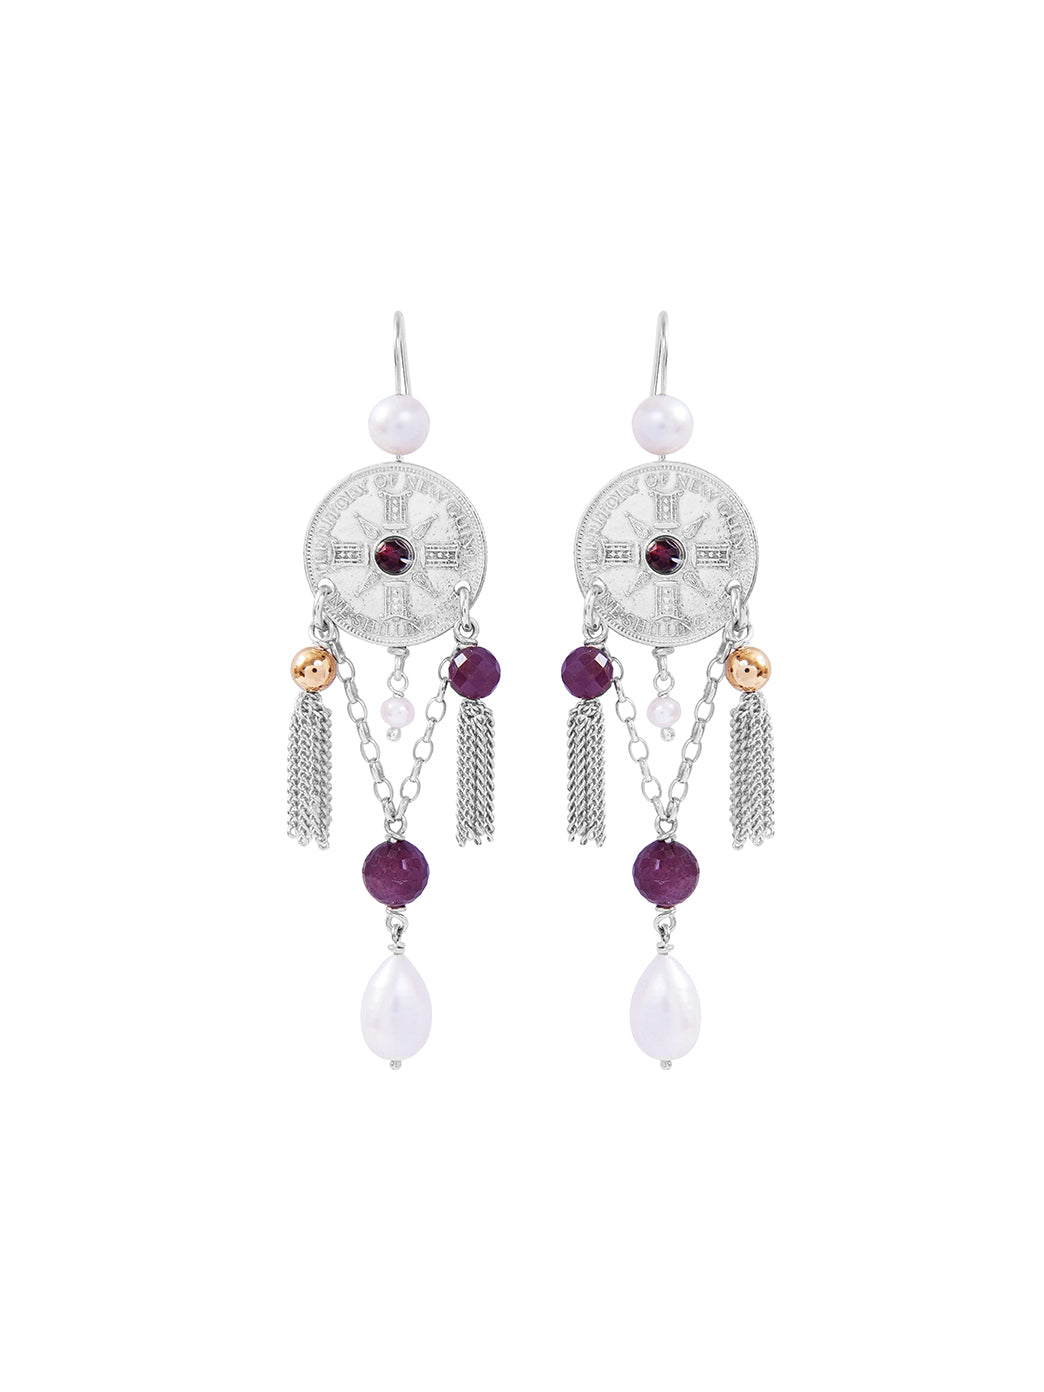 Fiorina Jewellery Raj Princess Earrings Ruby